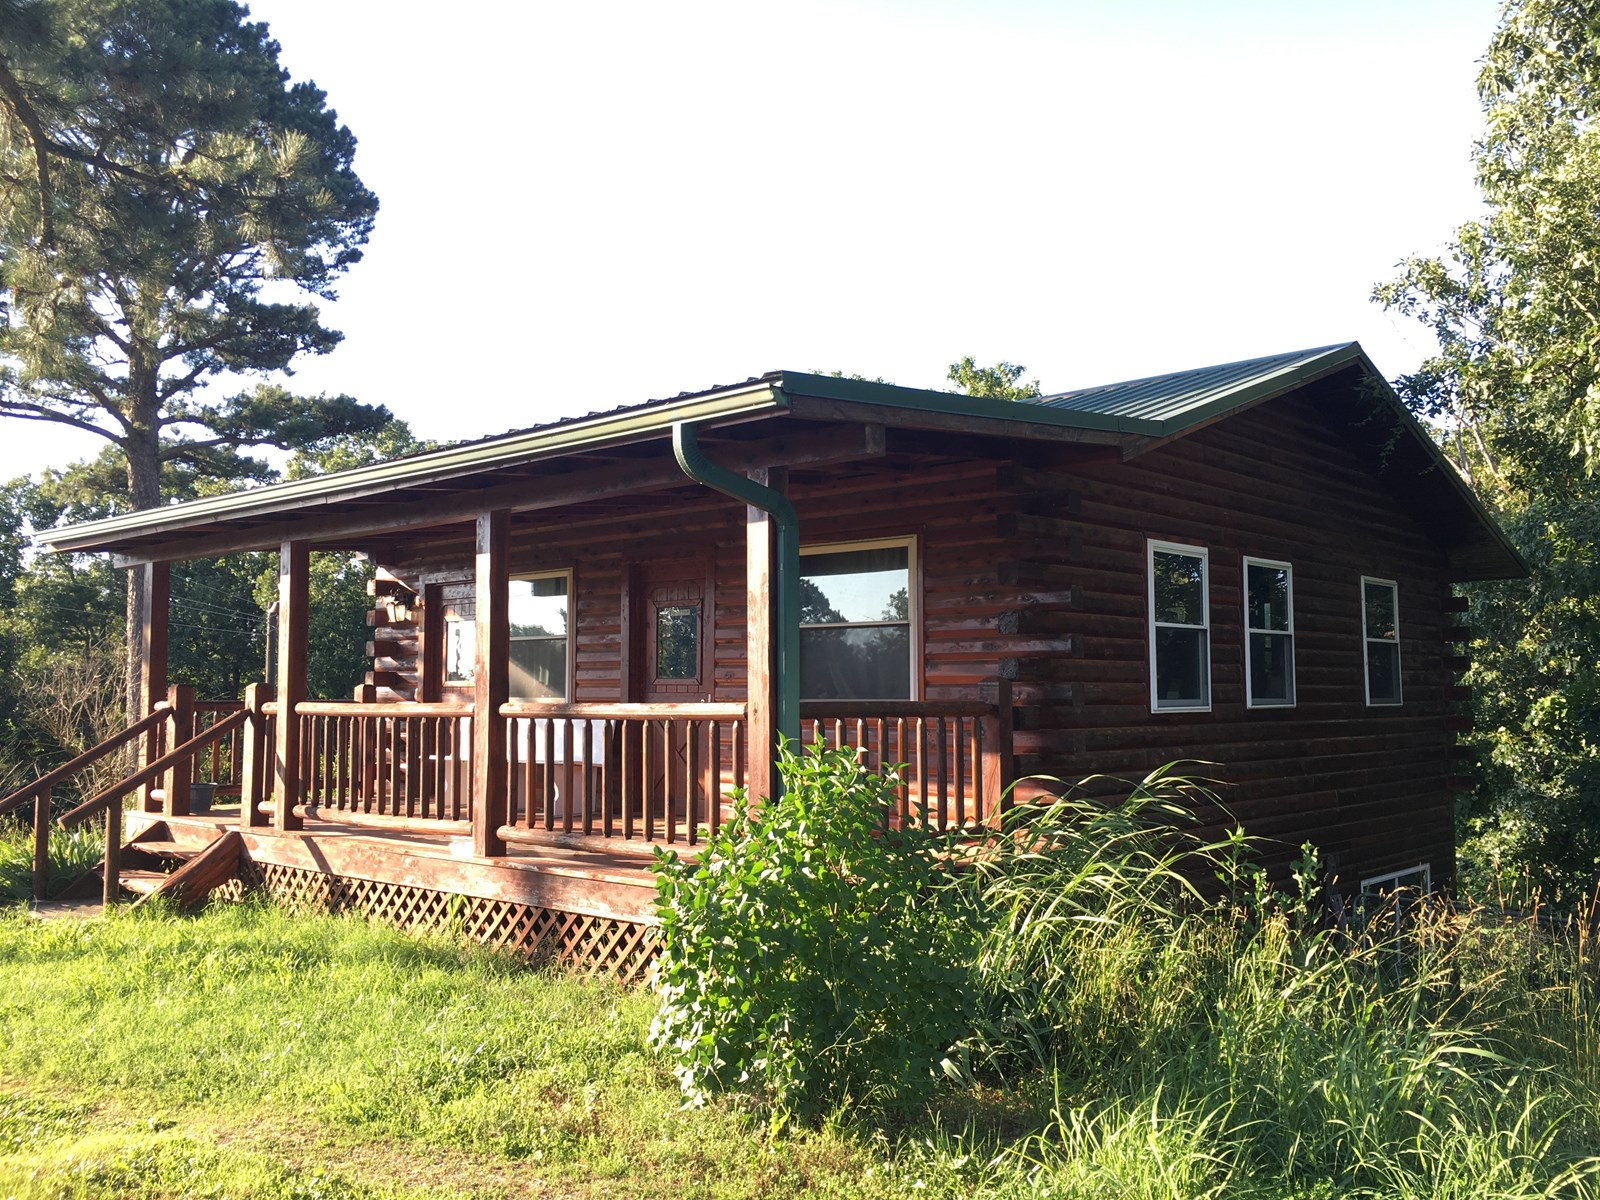 Cabin for sale in the Ozarks